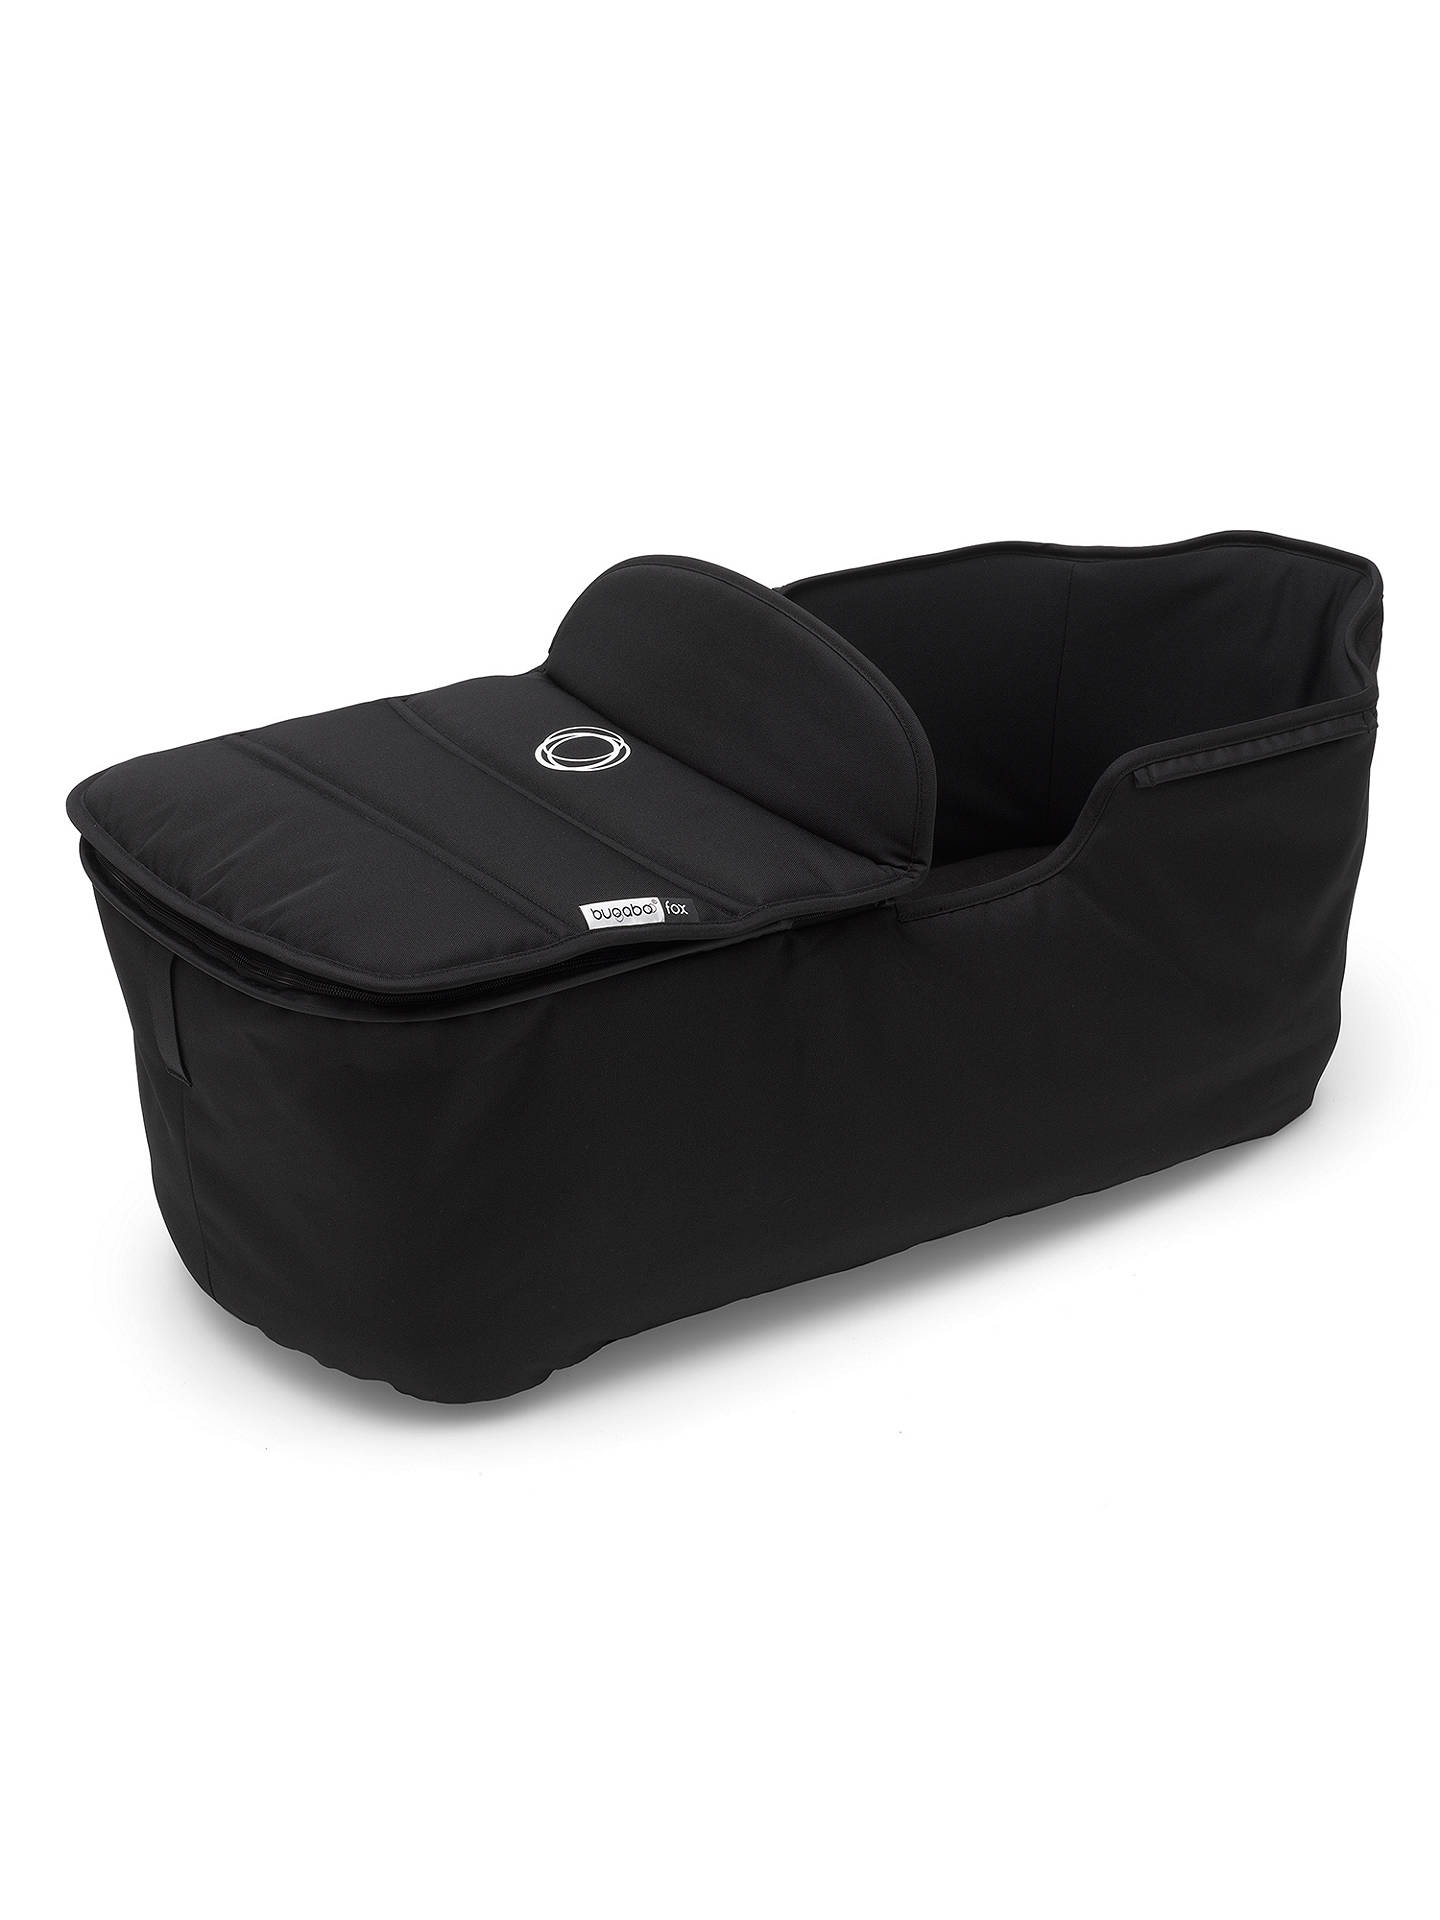 BuyBugaboo Fox Complete Pushchair and Carrycot, Black with Black Fabric and Sun Canopy Online at johnlewis.com